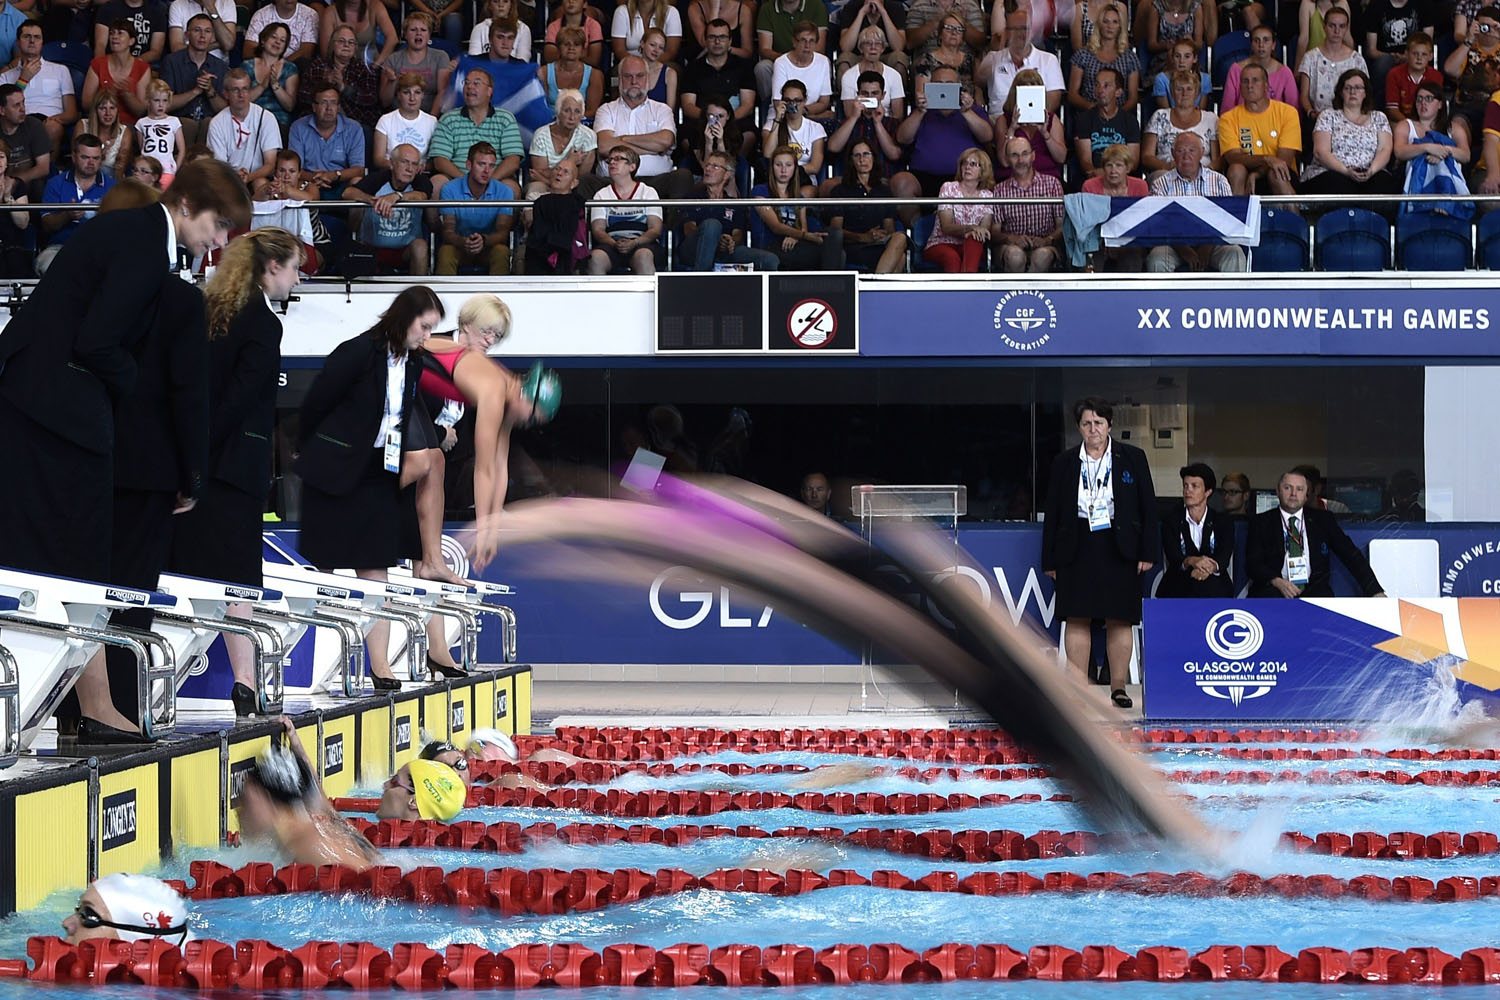 Jul. 26, 2014. Swimmers dive in during the Women's 4 x 200m Freestyle Relay Final at the Tollcross International Swimming Centre during the 2014 Commonwealth Games in Glasgow.